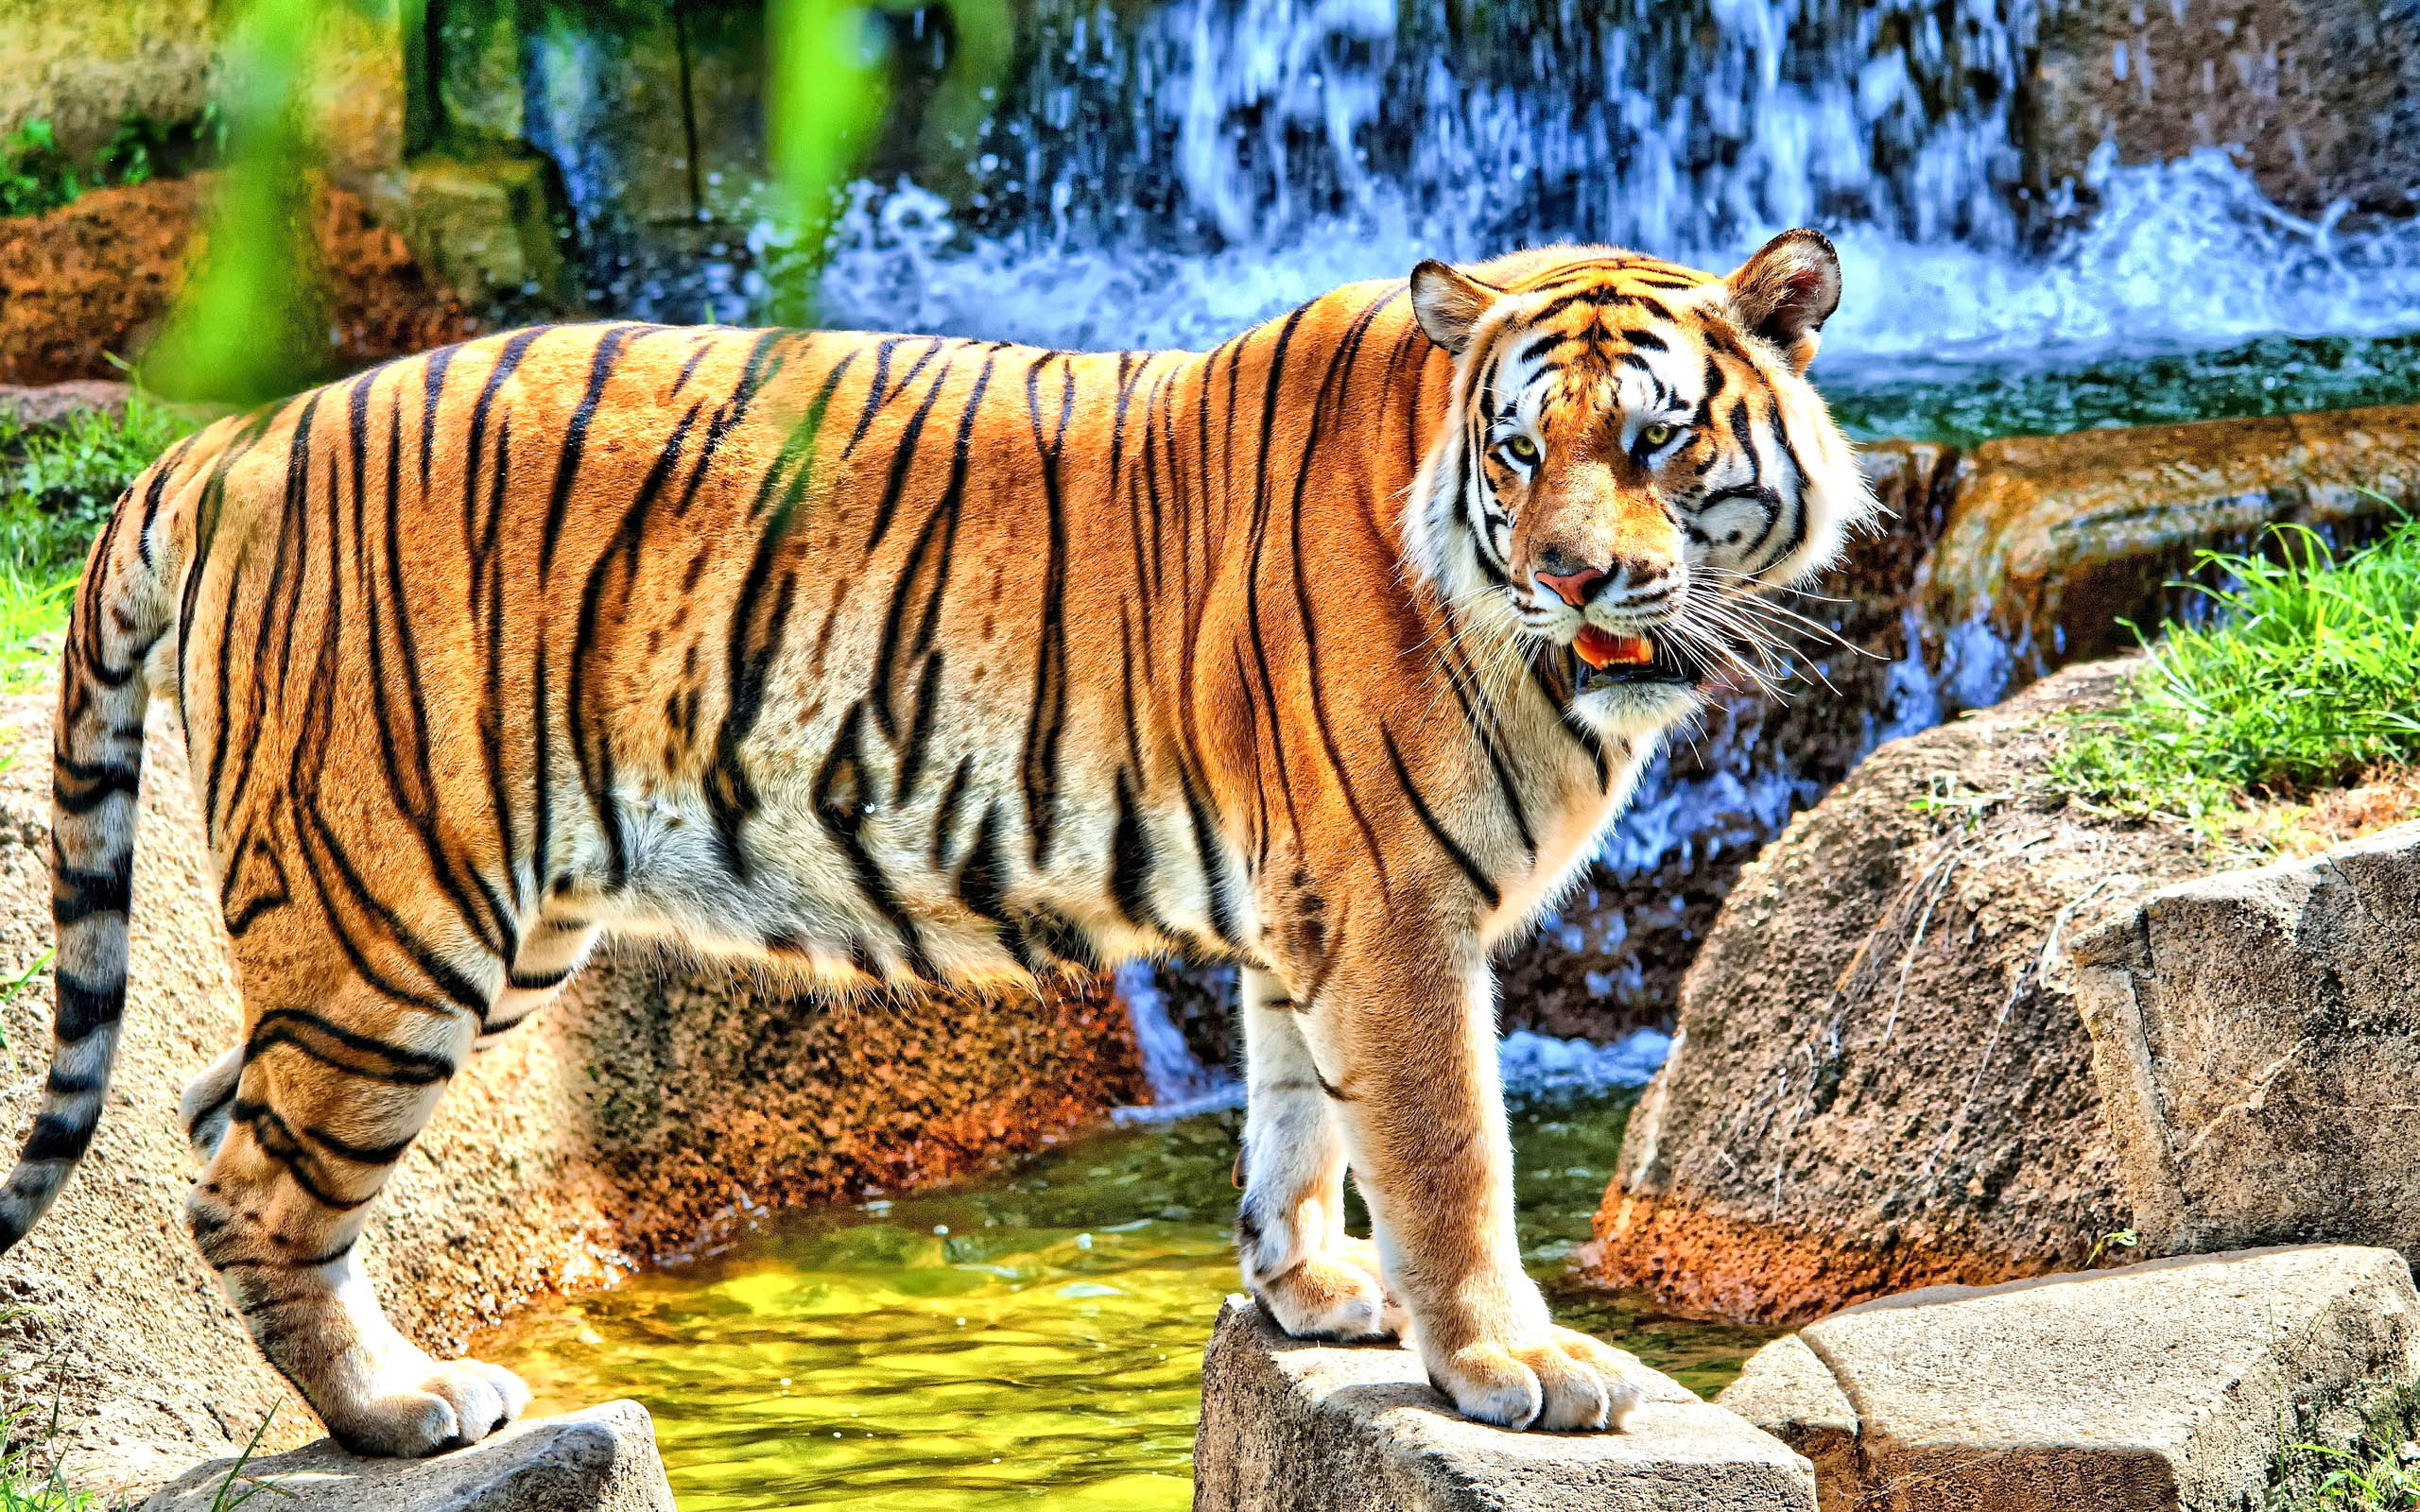 Cute Bengal Wallpapers Hd 1366x768 Tiger High Definiton Hd Desktop Backgrounds Amp Wallpapers